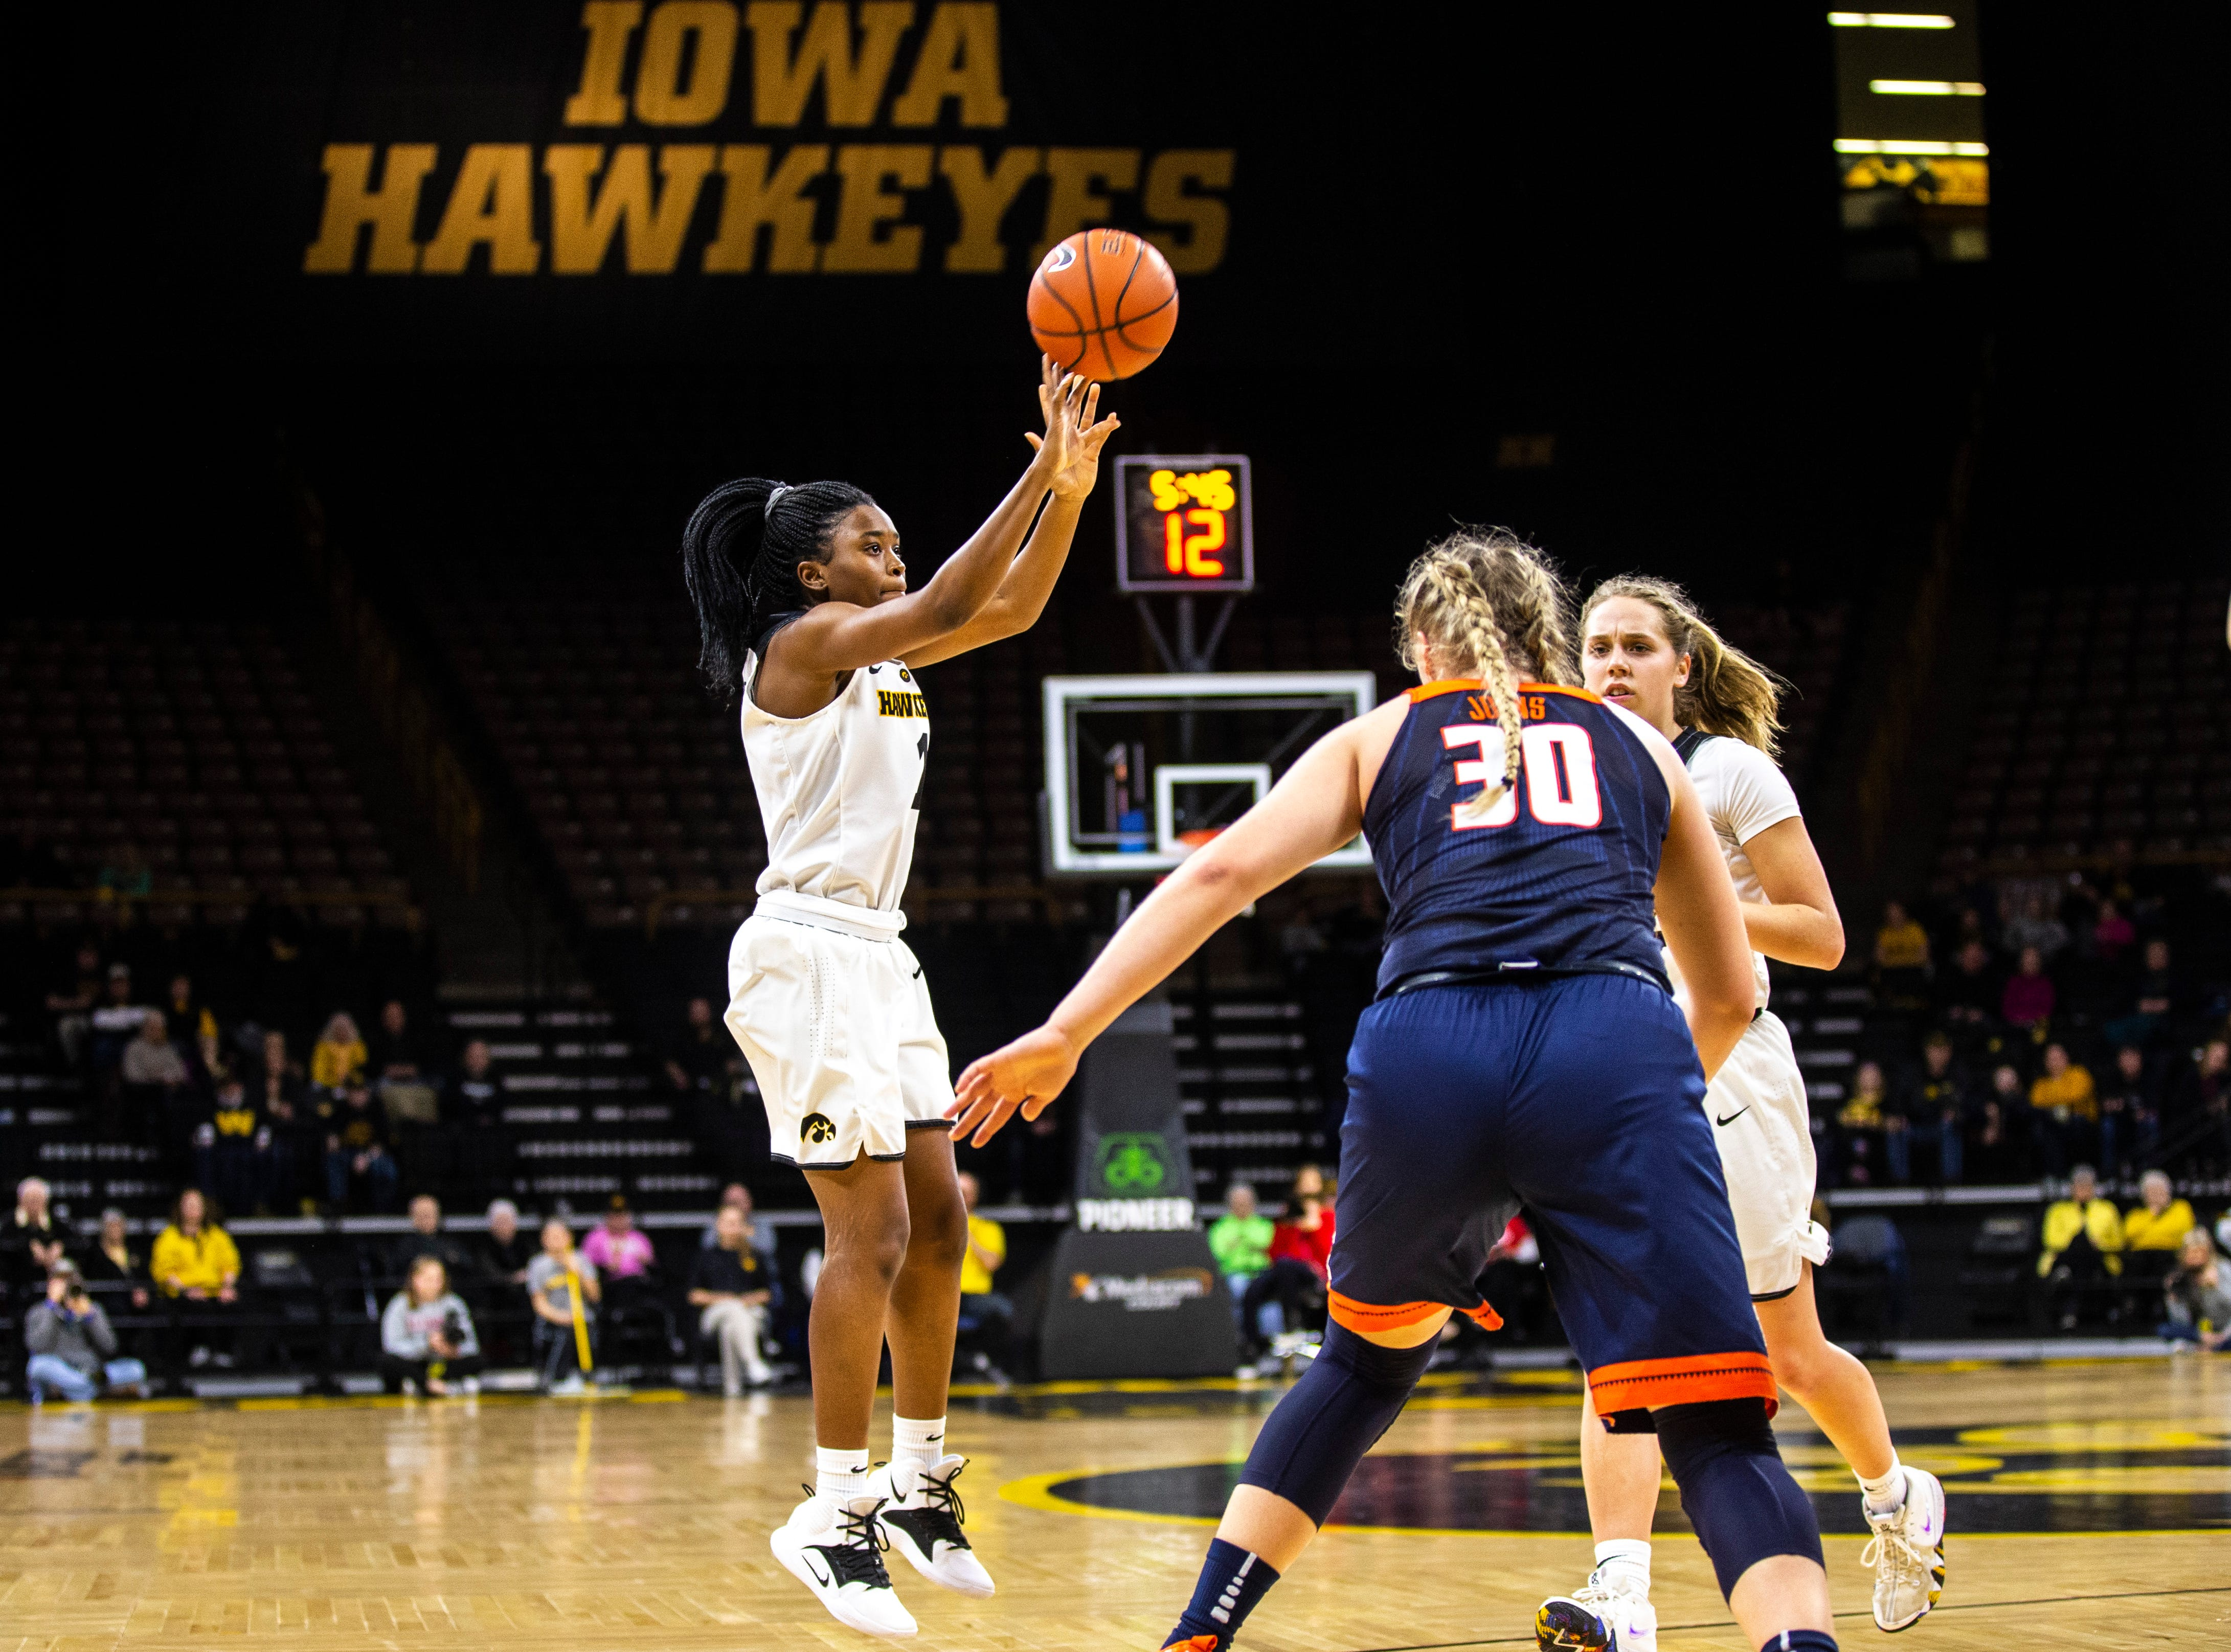 Iowa guard Tomi Taiwo (1) attempts a 3-point basket during a NCAA Big Ten Conference women's basketball game on Thursday, Feb. 14, 2019 at Carver-Hawkeye Arena in Iowa City, Iowa.